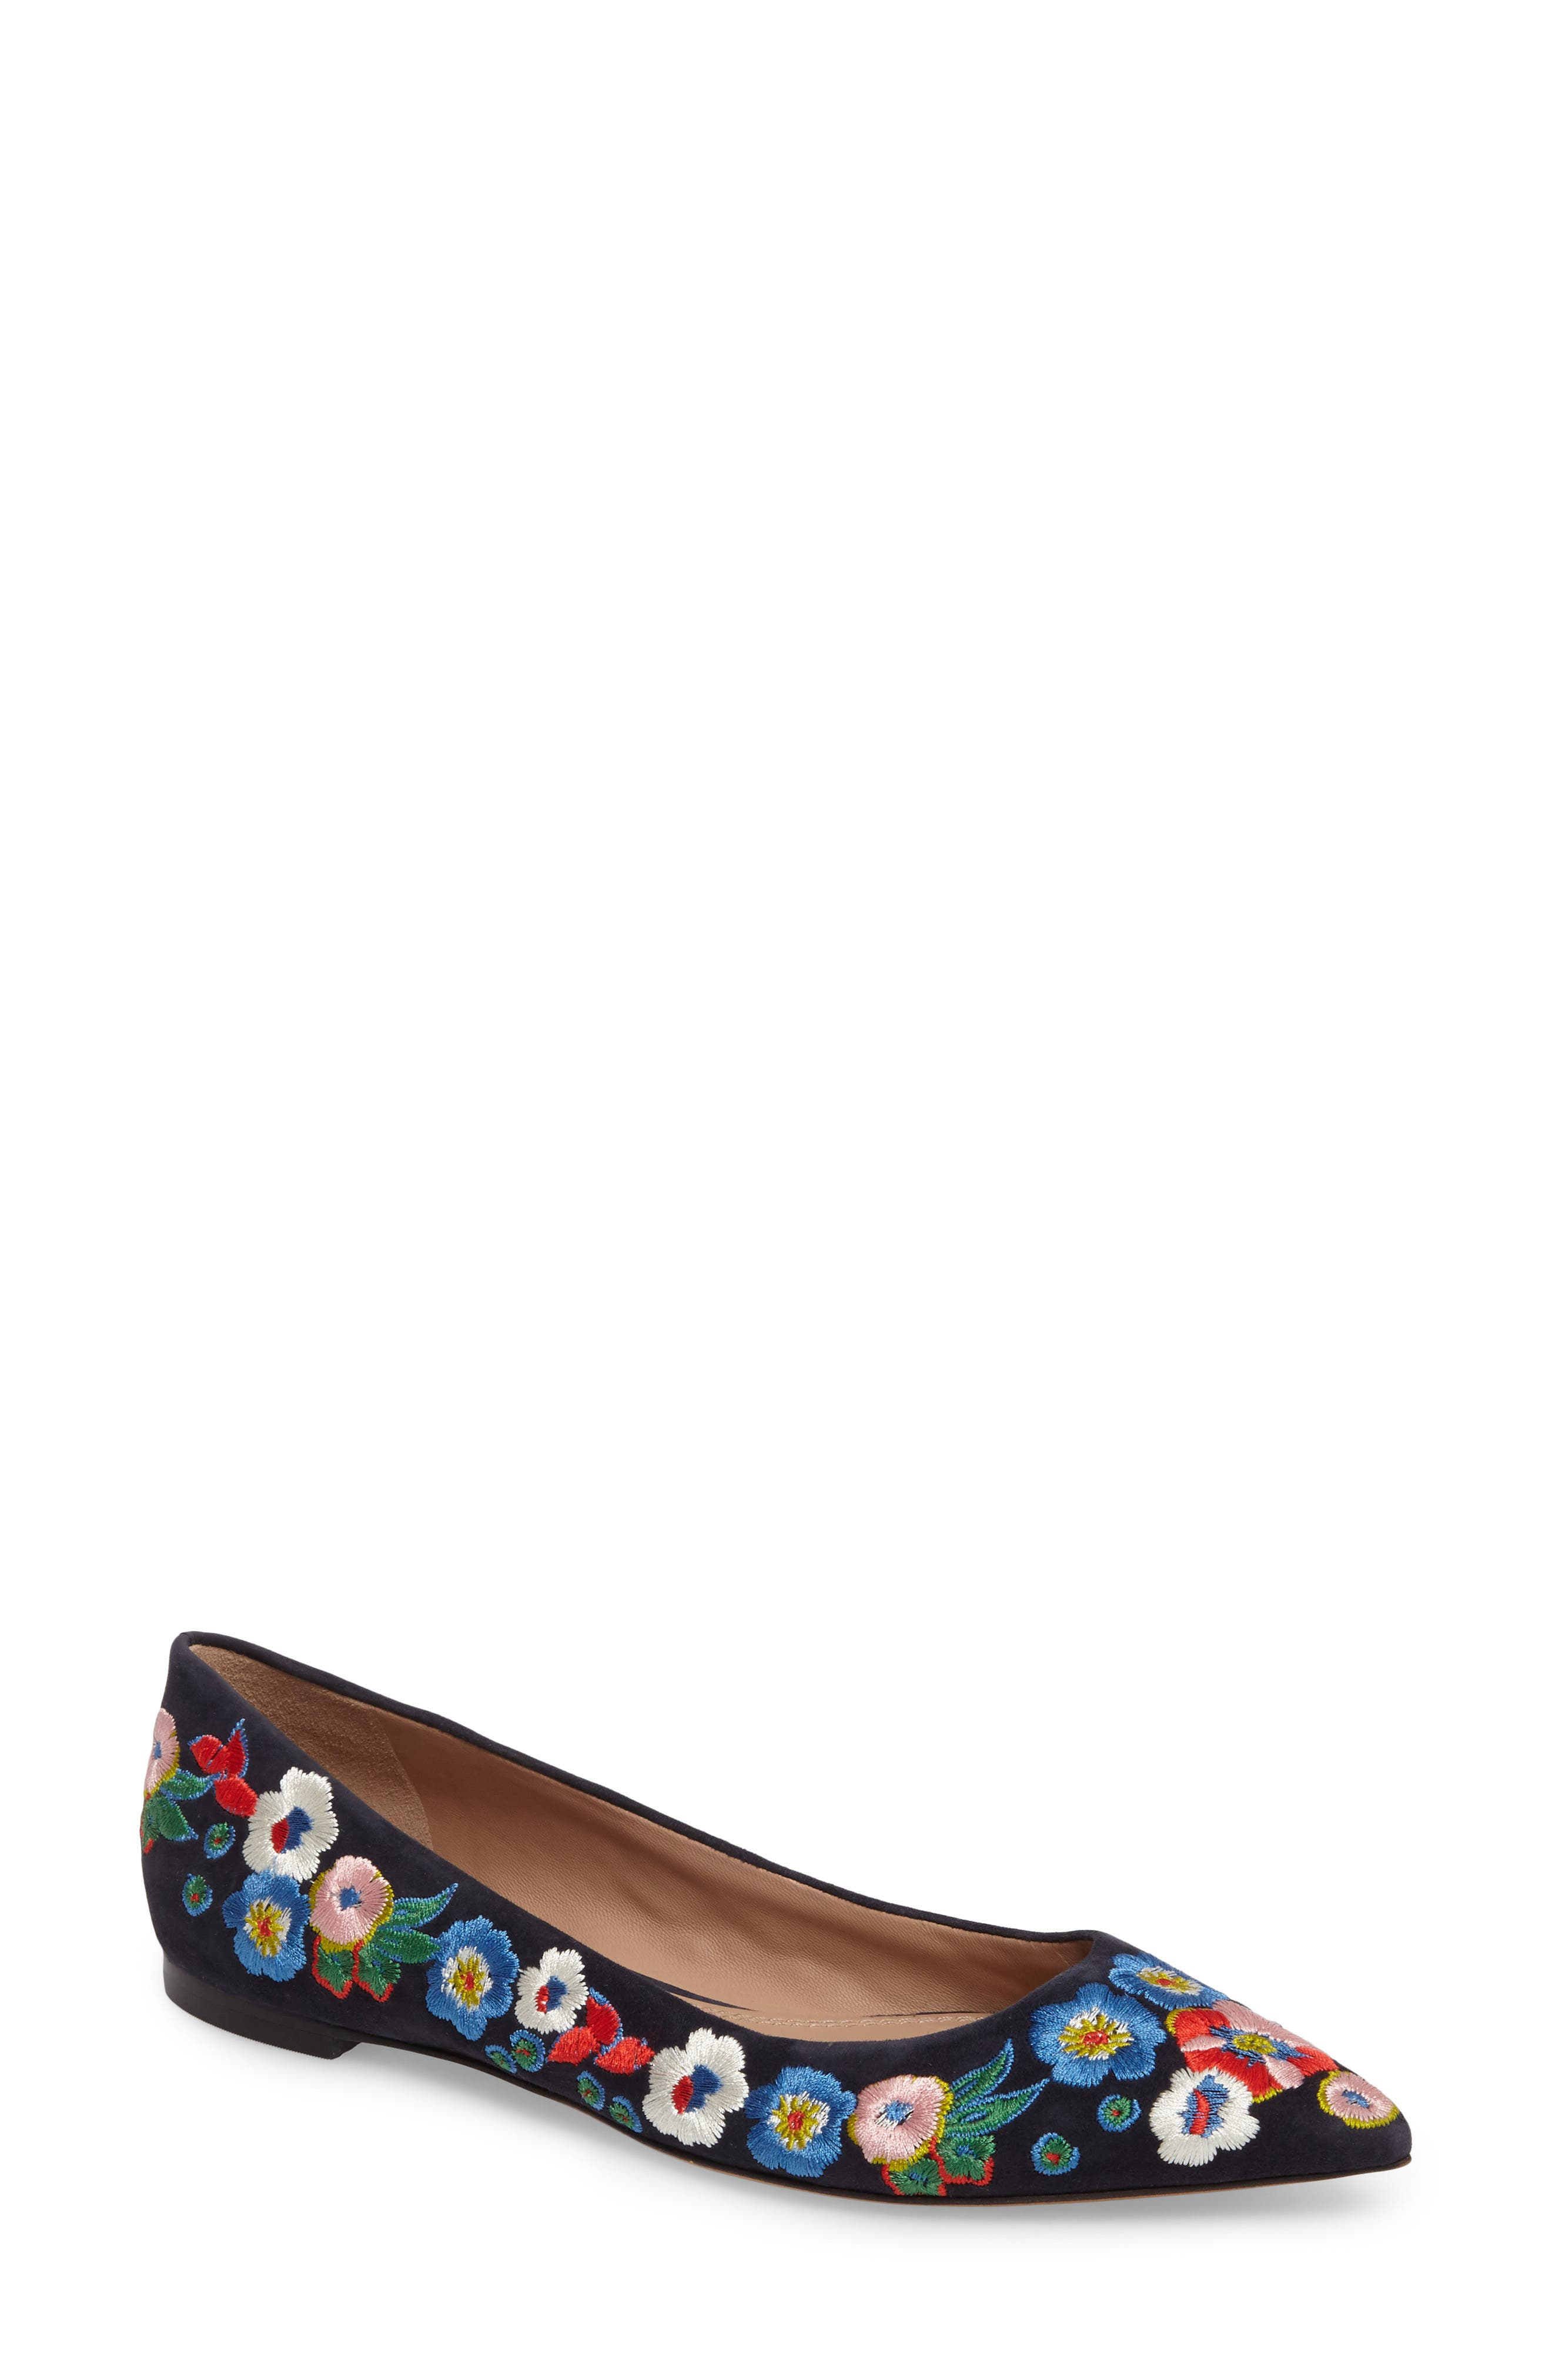 Alternate Image 1 Selected - Tory Burch Rosemont Flower Embroidered Flat (Women)